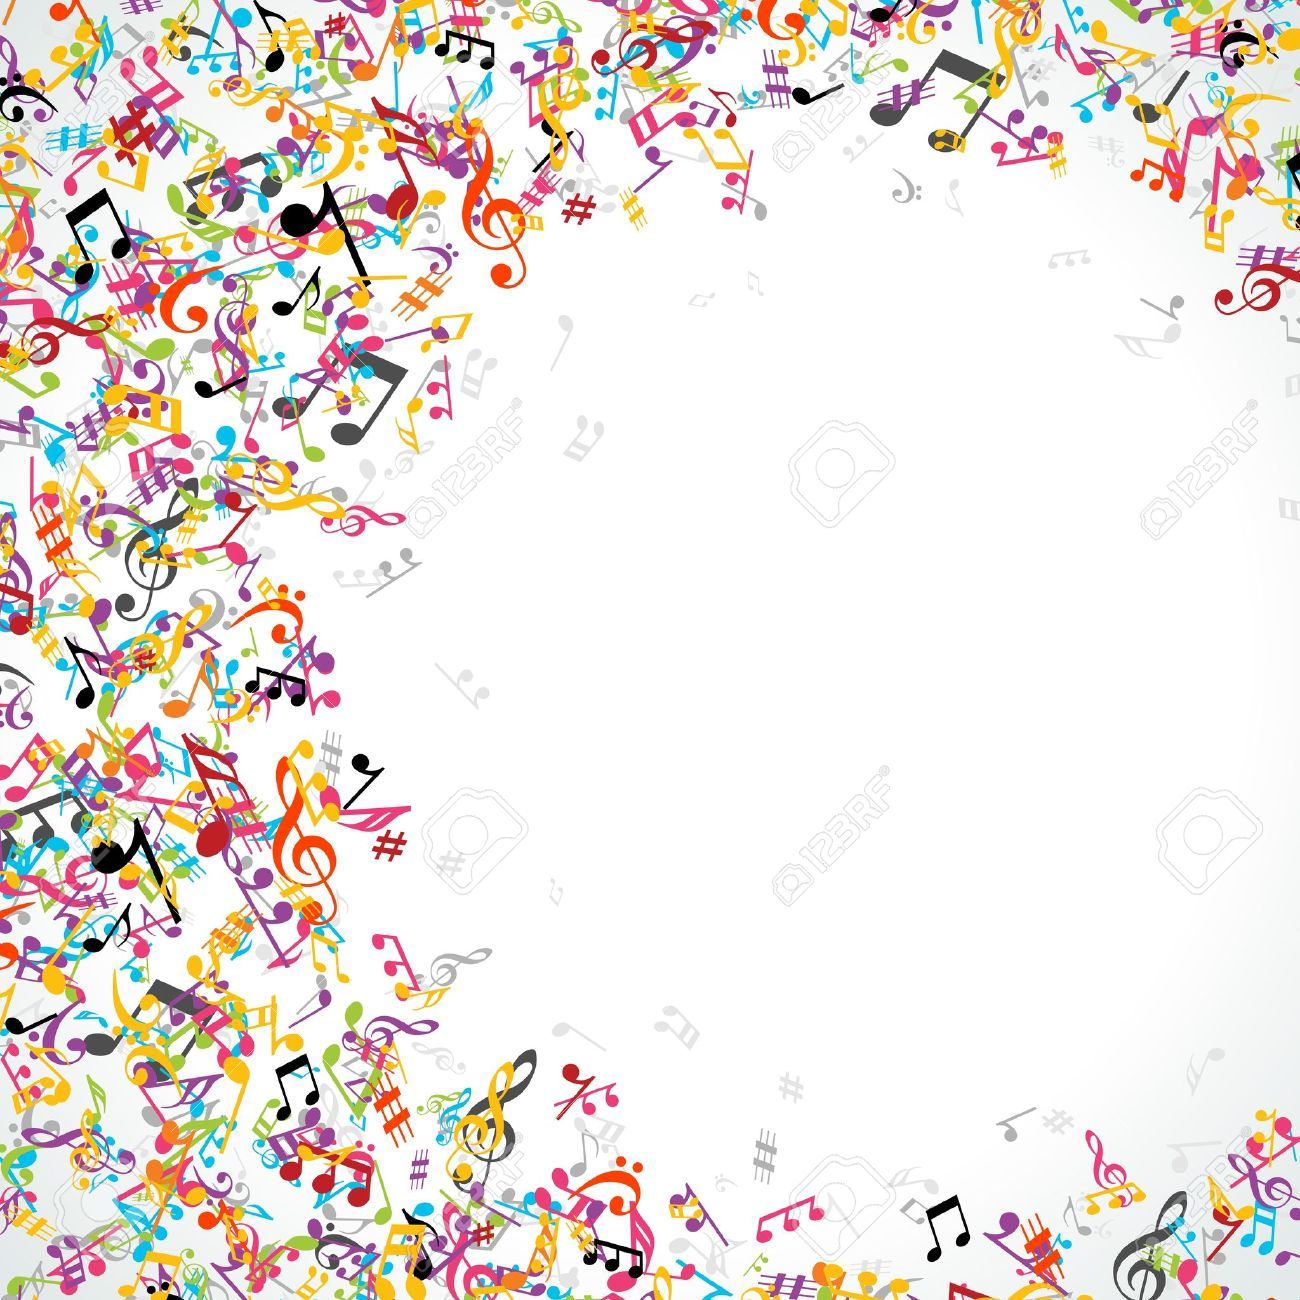 Colorful music notes background - 13260254